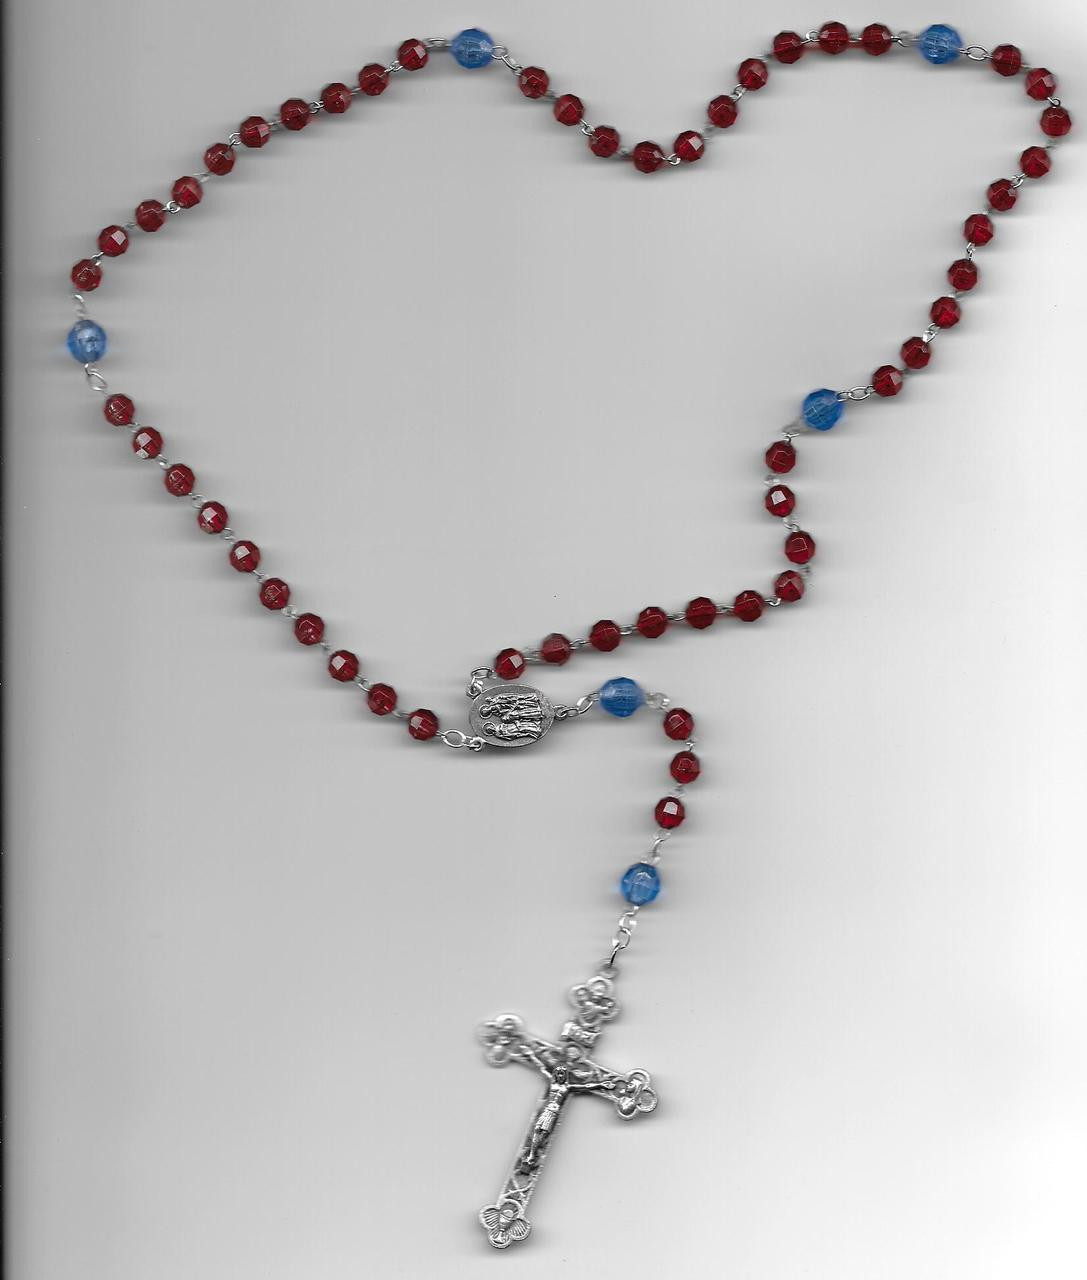 Red Decade, Blue Our Father Crystal Bead Chain Link Rosary